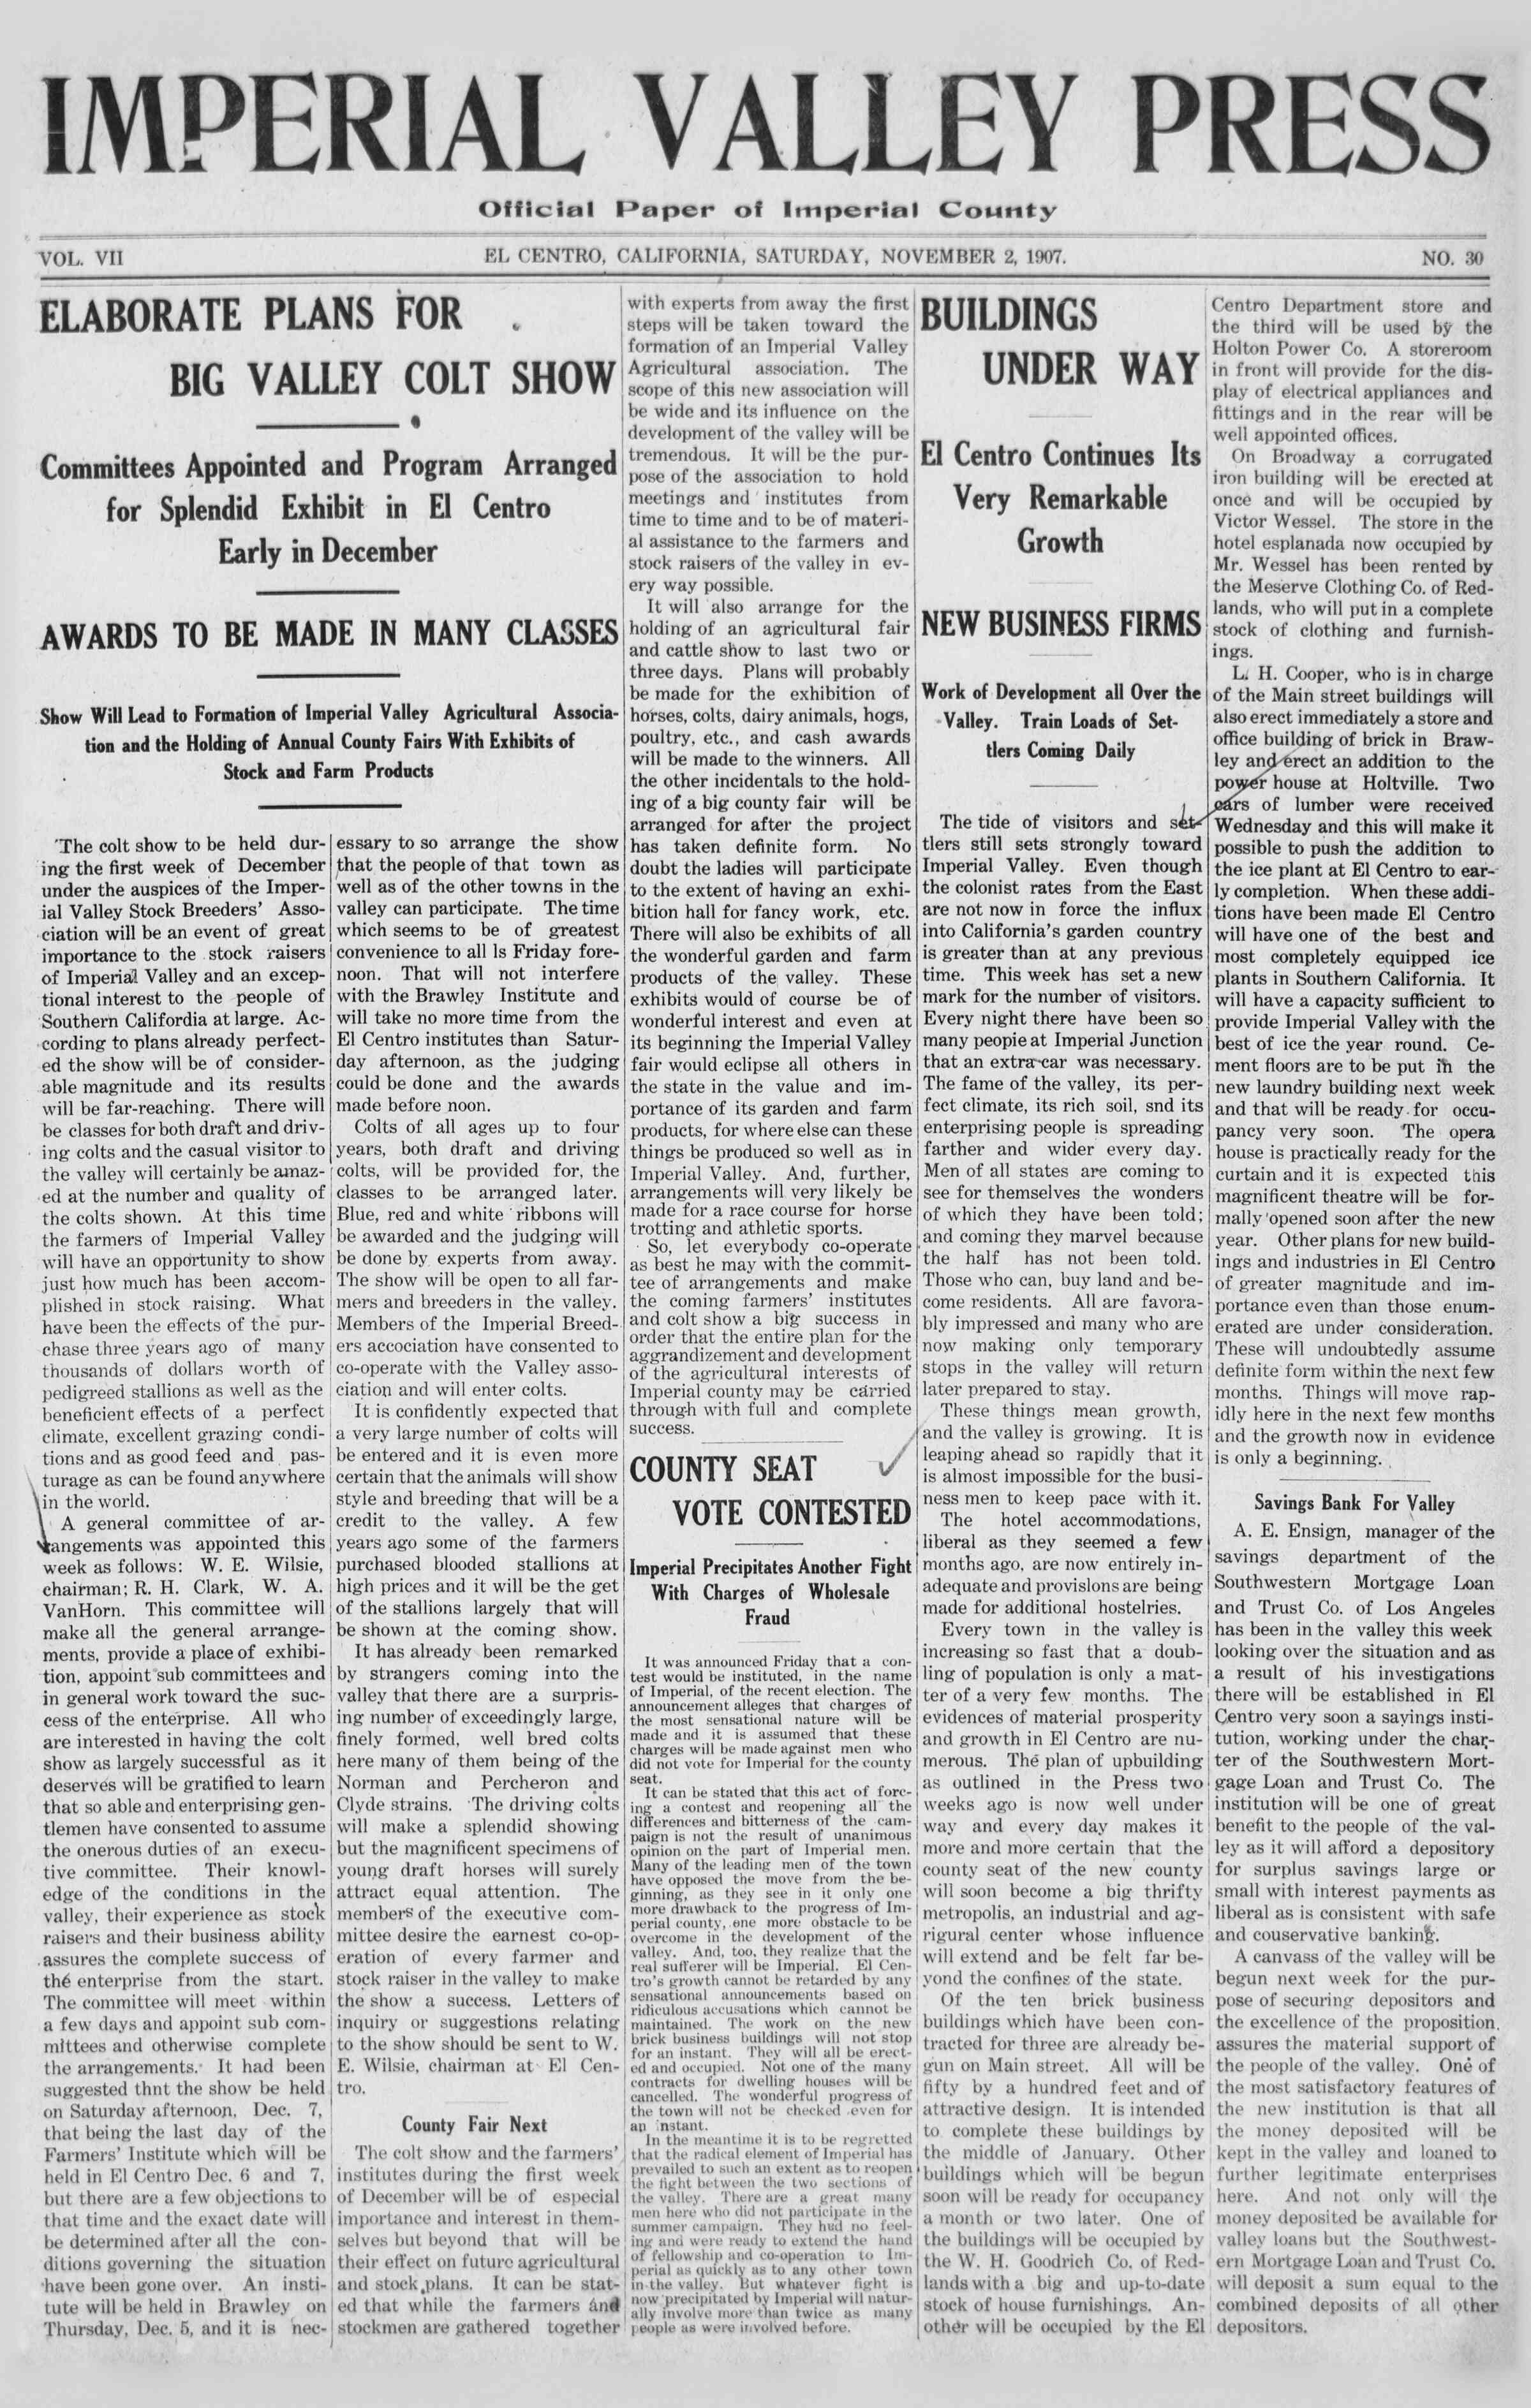 November 2, 1907 Tarihli Imperial Valley Press Dergisi Sayfa 1